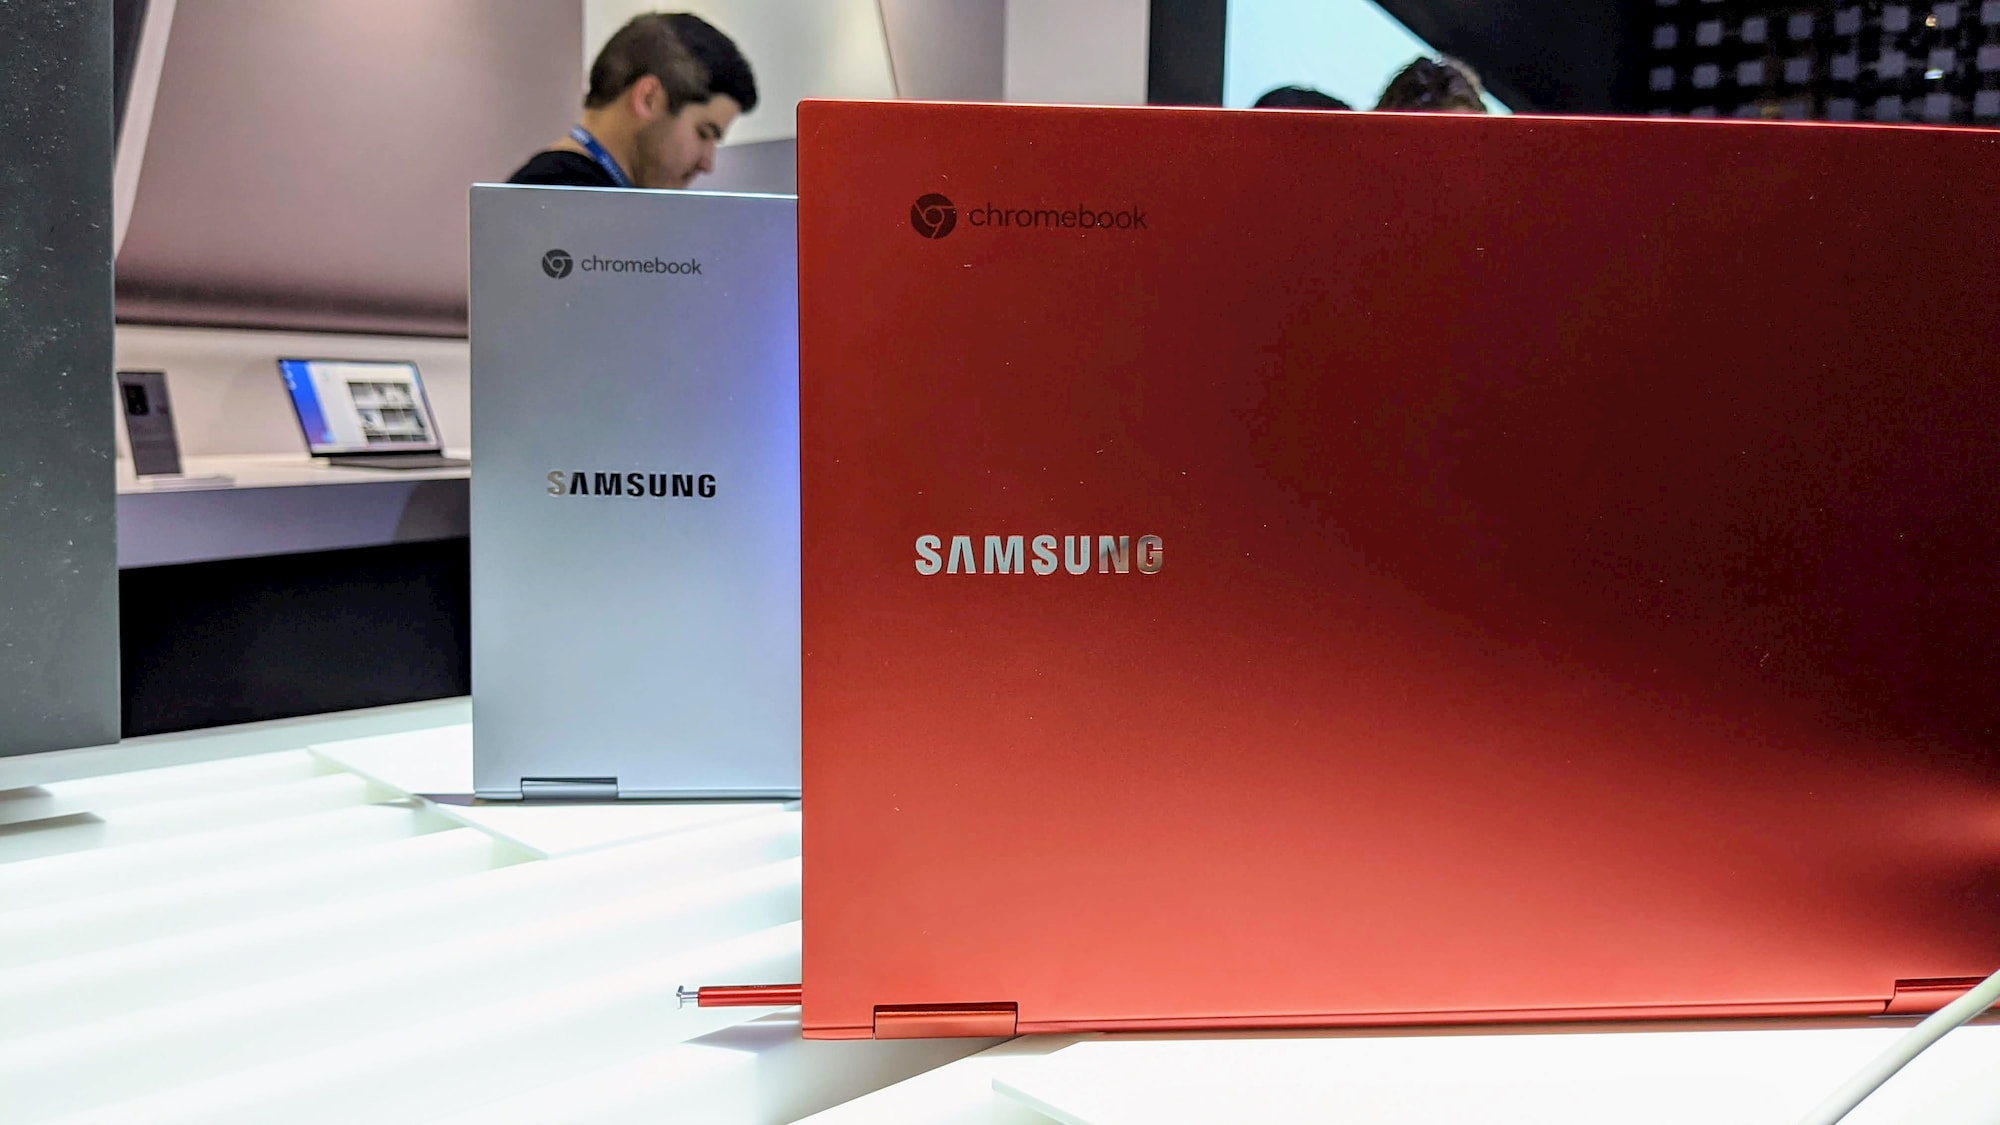 Deal Alert: $100 off the Samsung Galaxy Chromebook